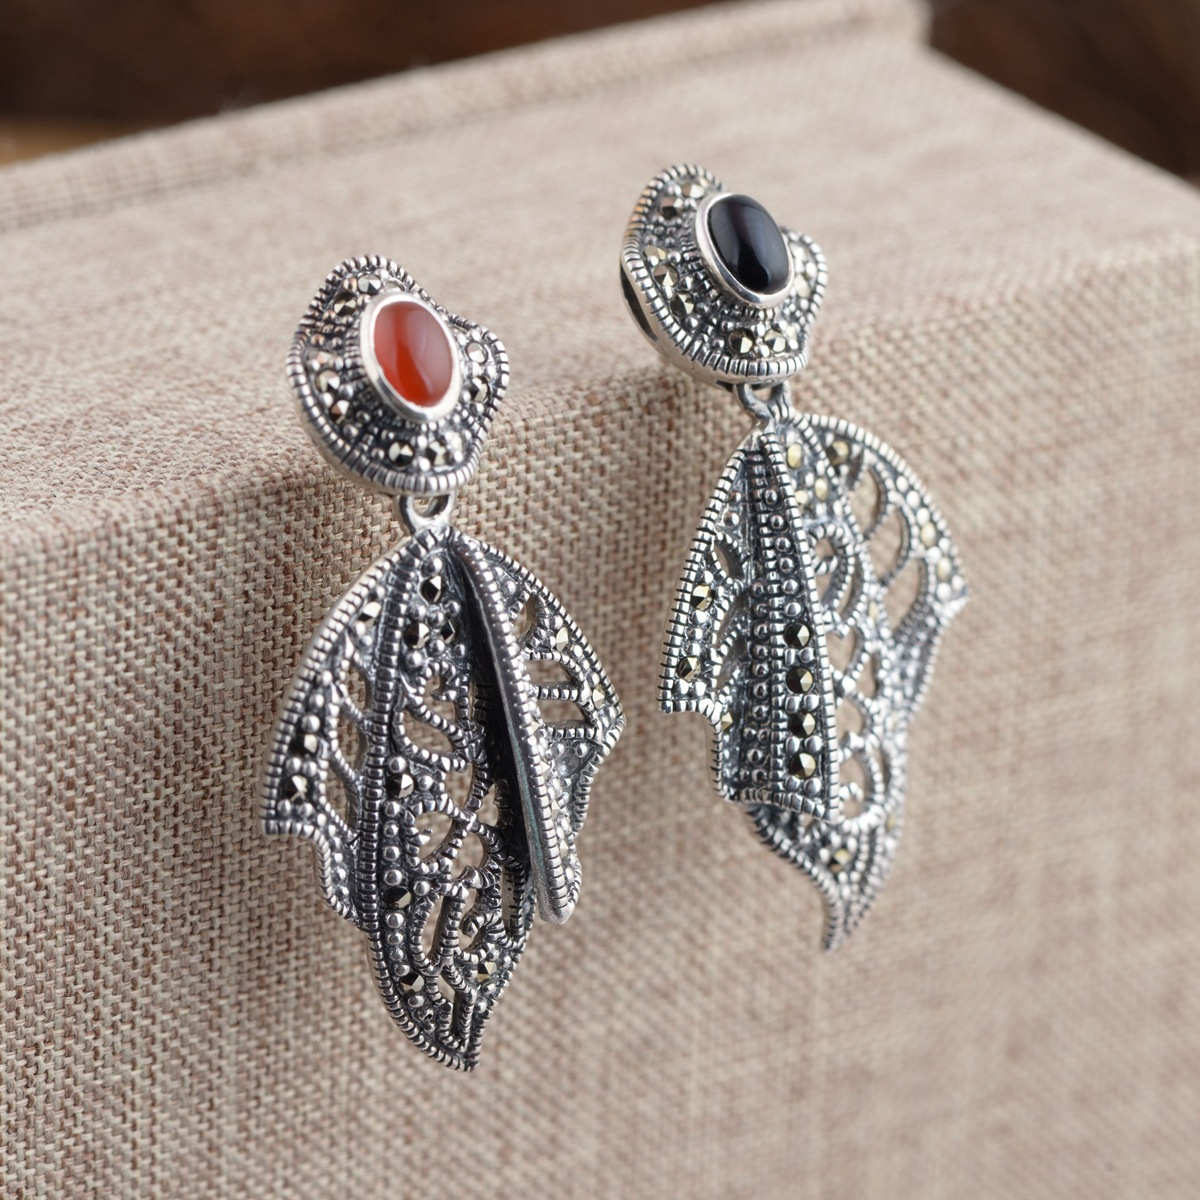 Earrings S925 Pure Silver Inlay Agate Thai Silver Antique Style Female With Delicate Do Manual Work Is The New Earrings thai silver earrings s925 zircon silver inlaid white female antique style earrings atmospheric water